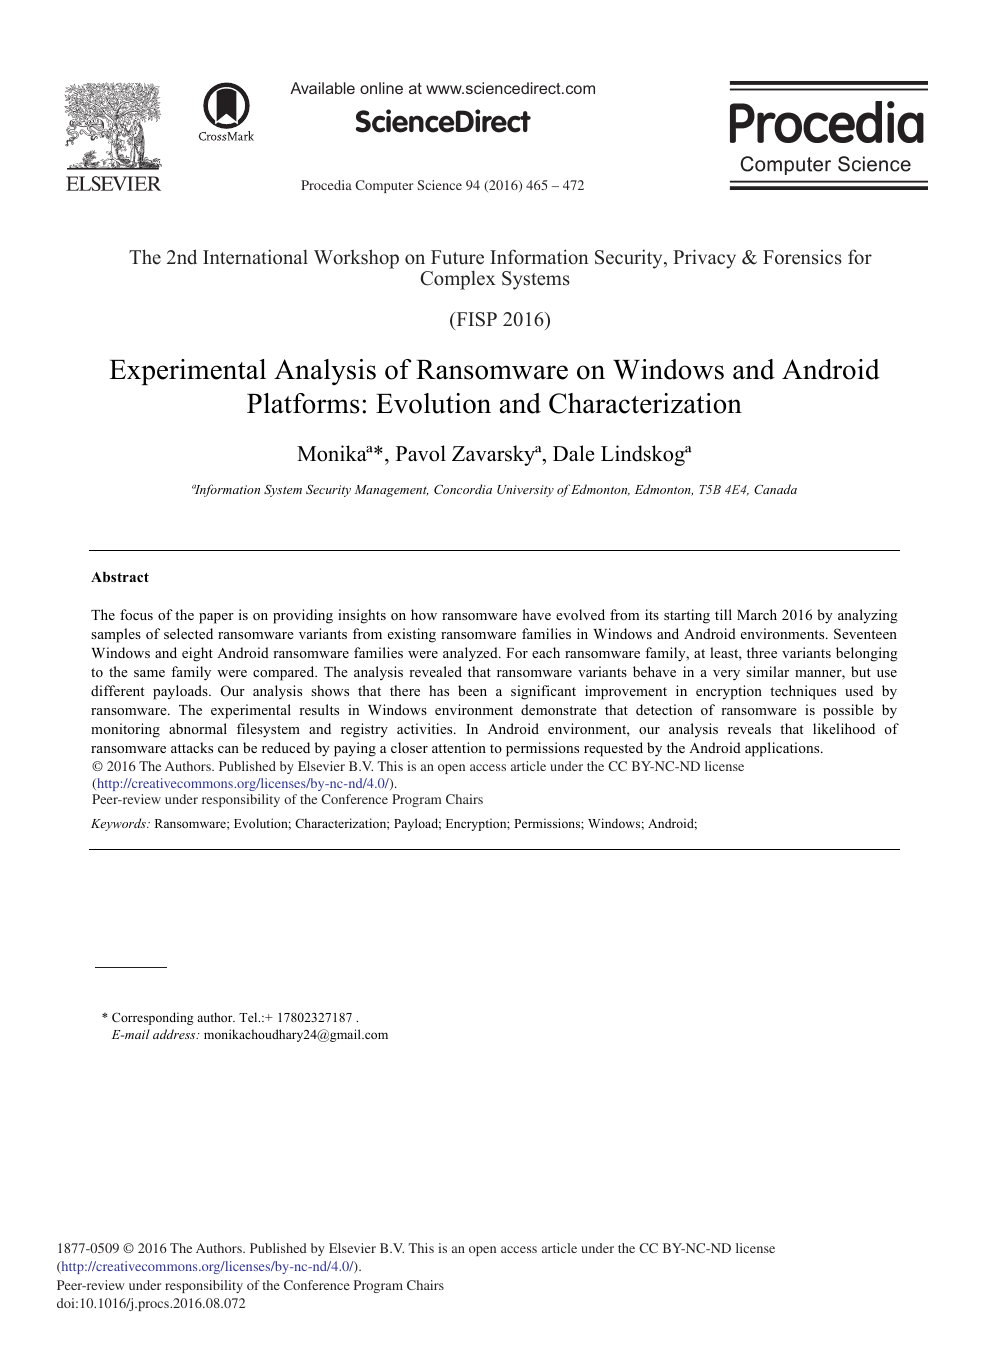 Experimental Analysis Of Ransomware On Windows And Android Platforms